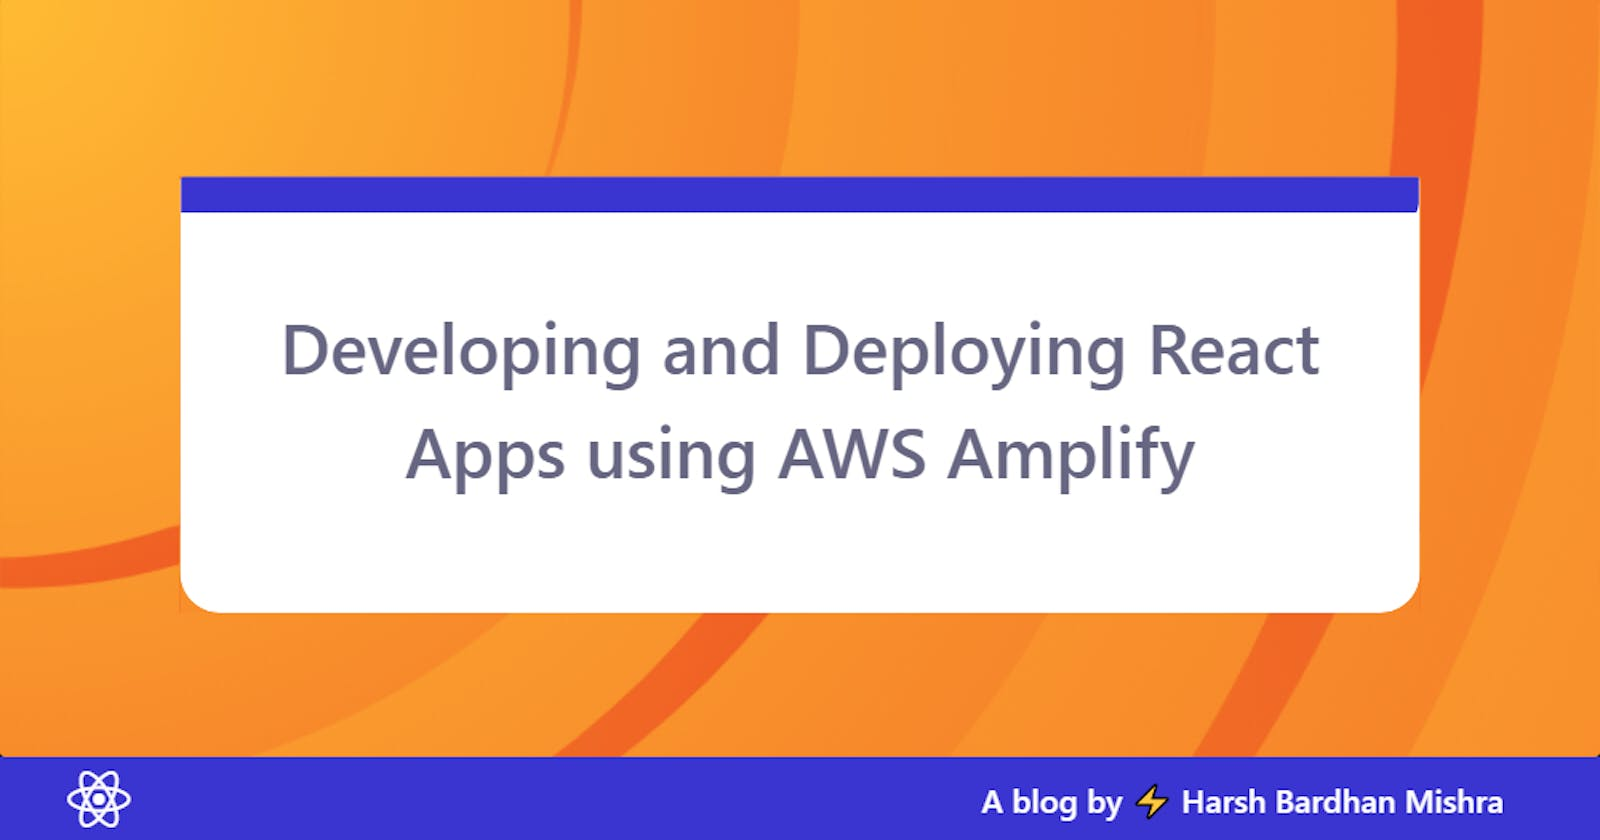 Developing and Deploying React Apps using AWS Amplify